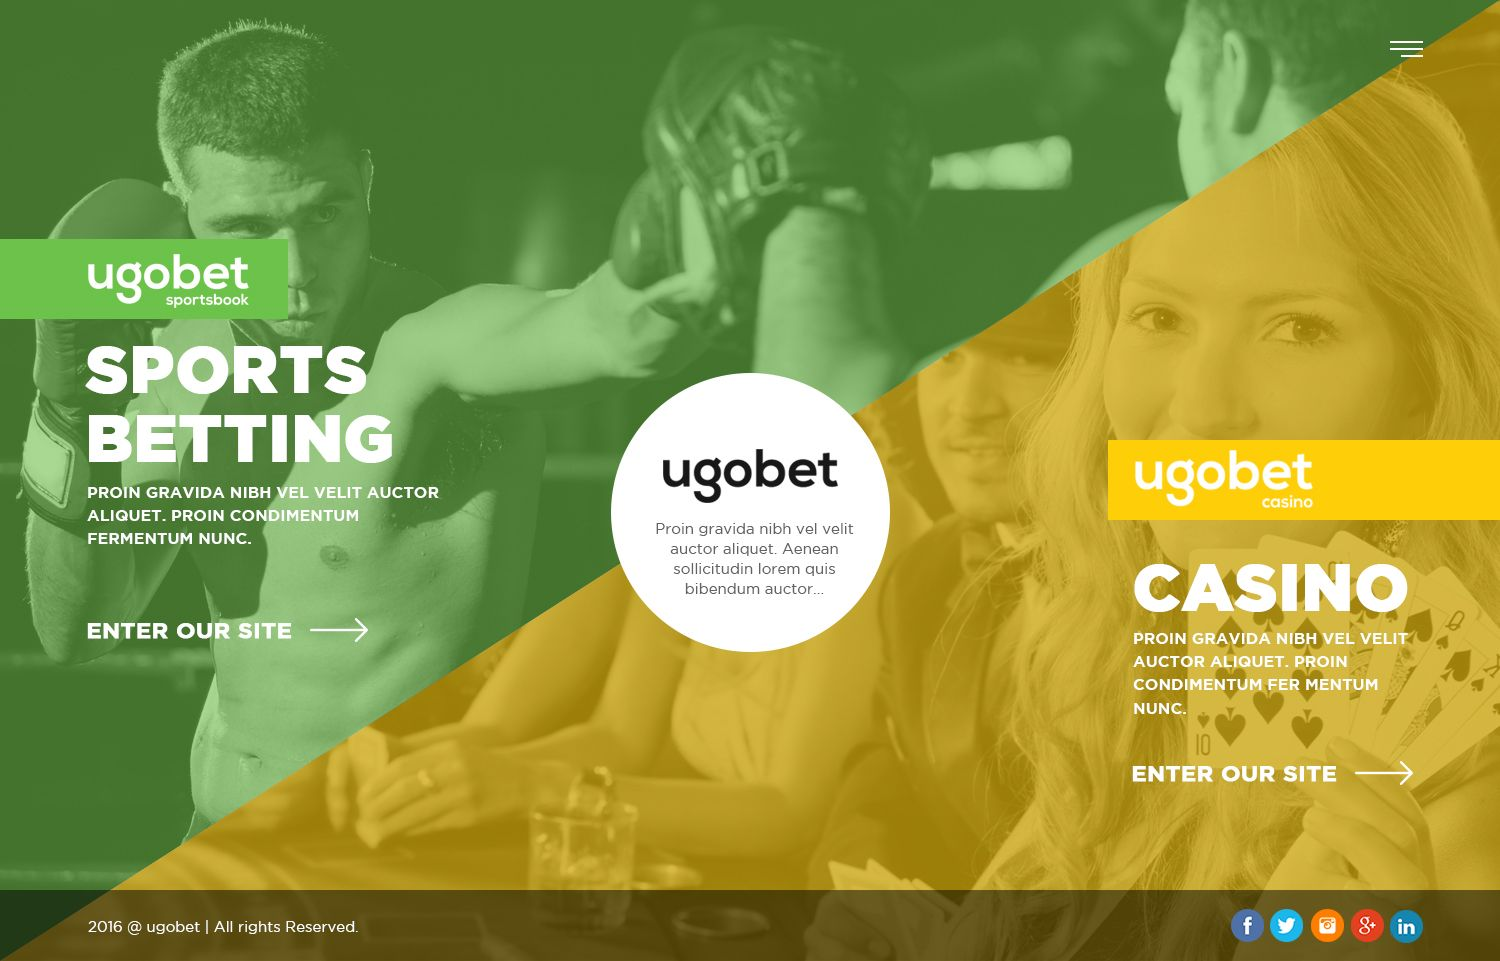 A sports betting company website design created by